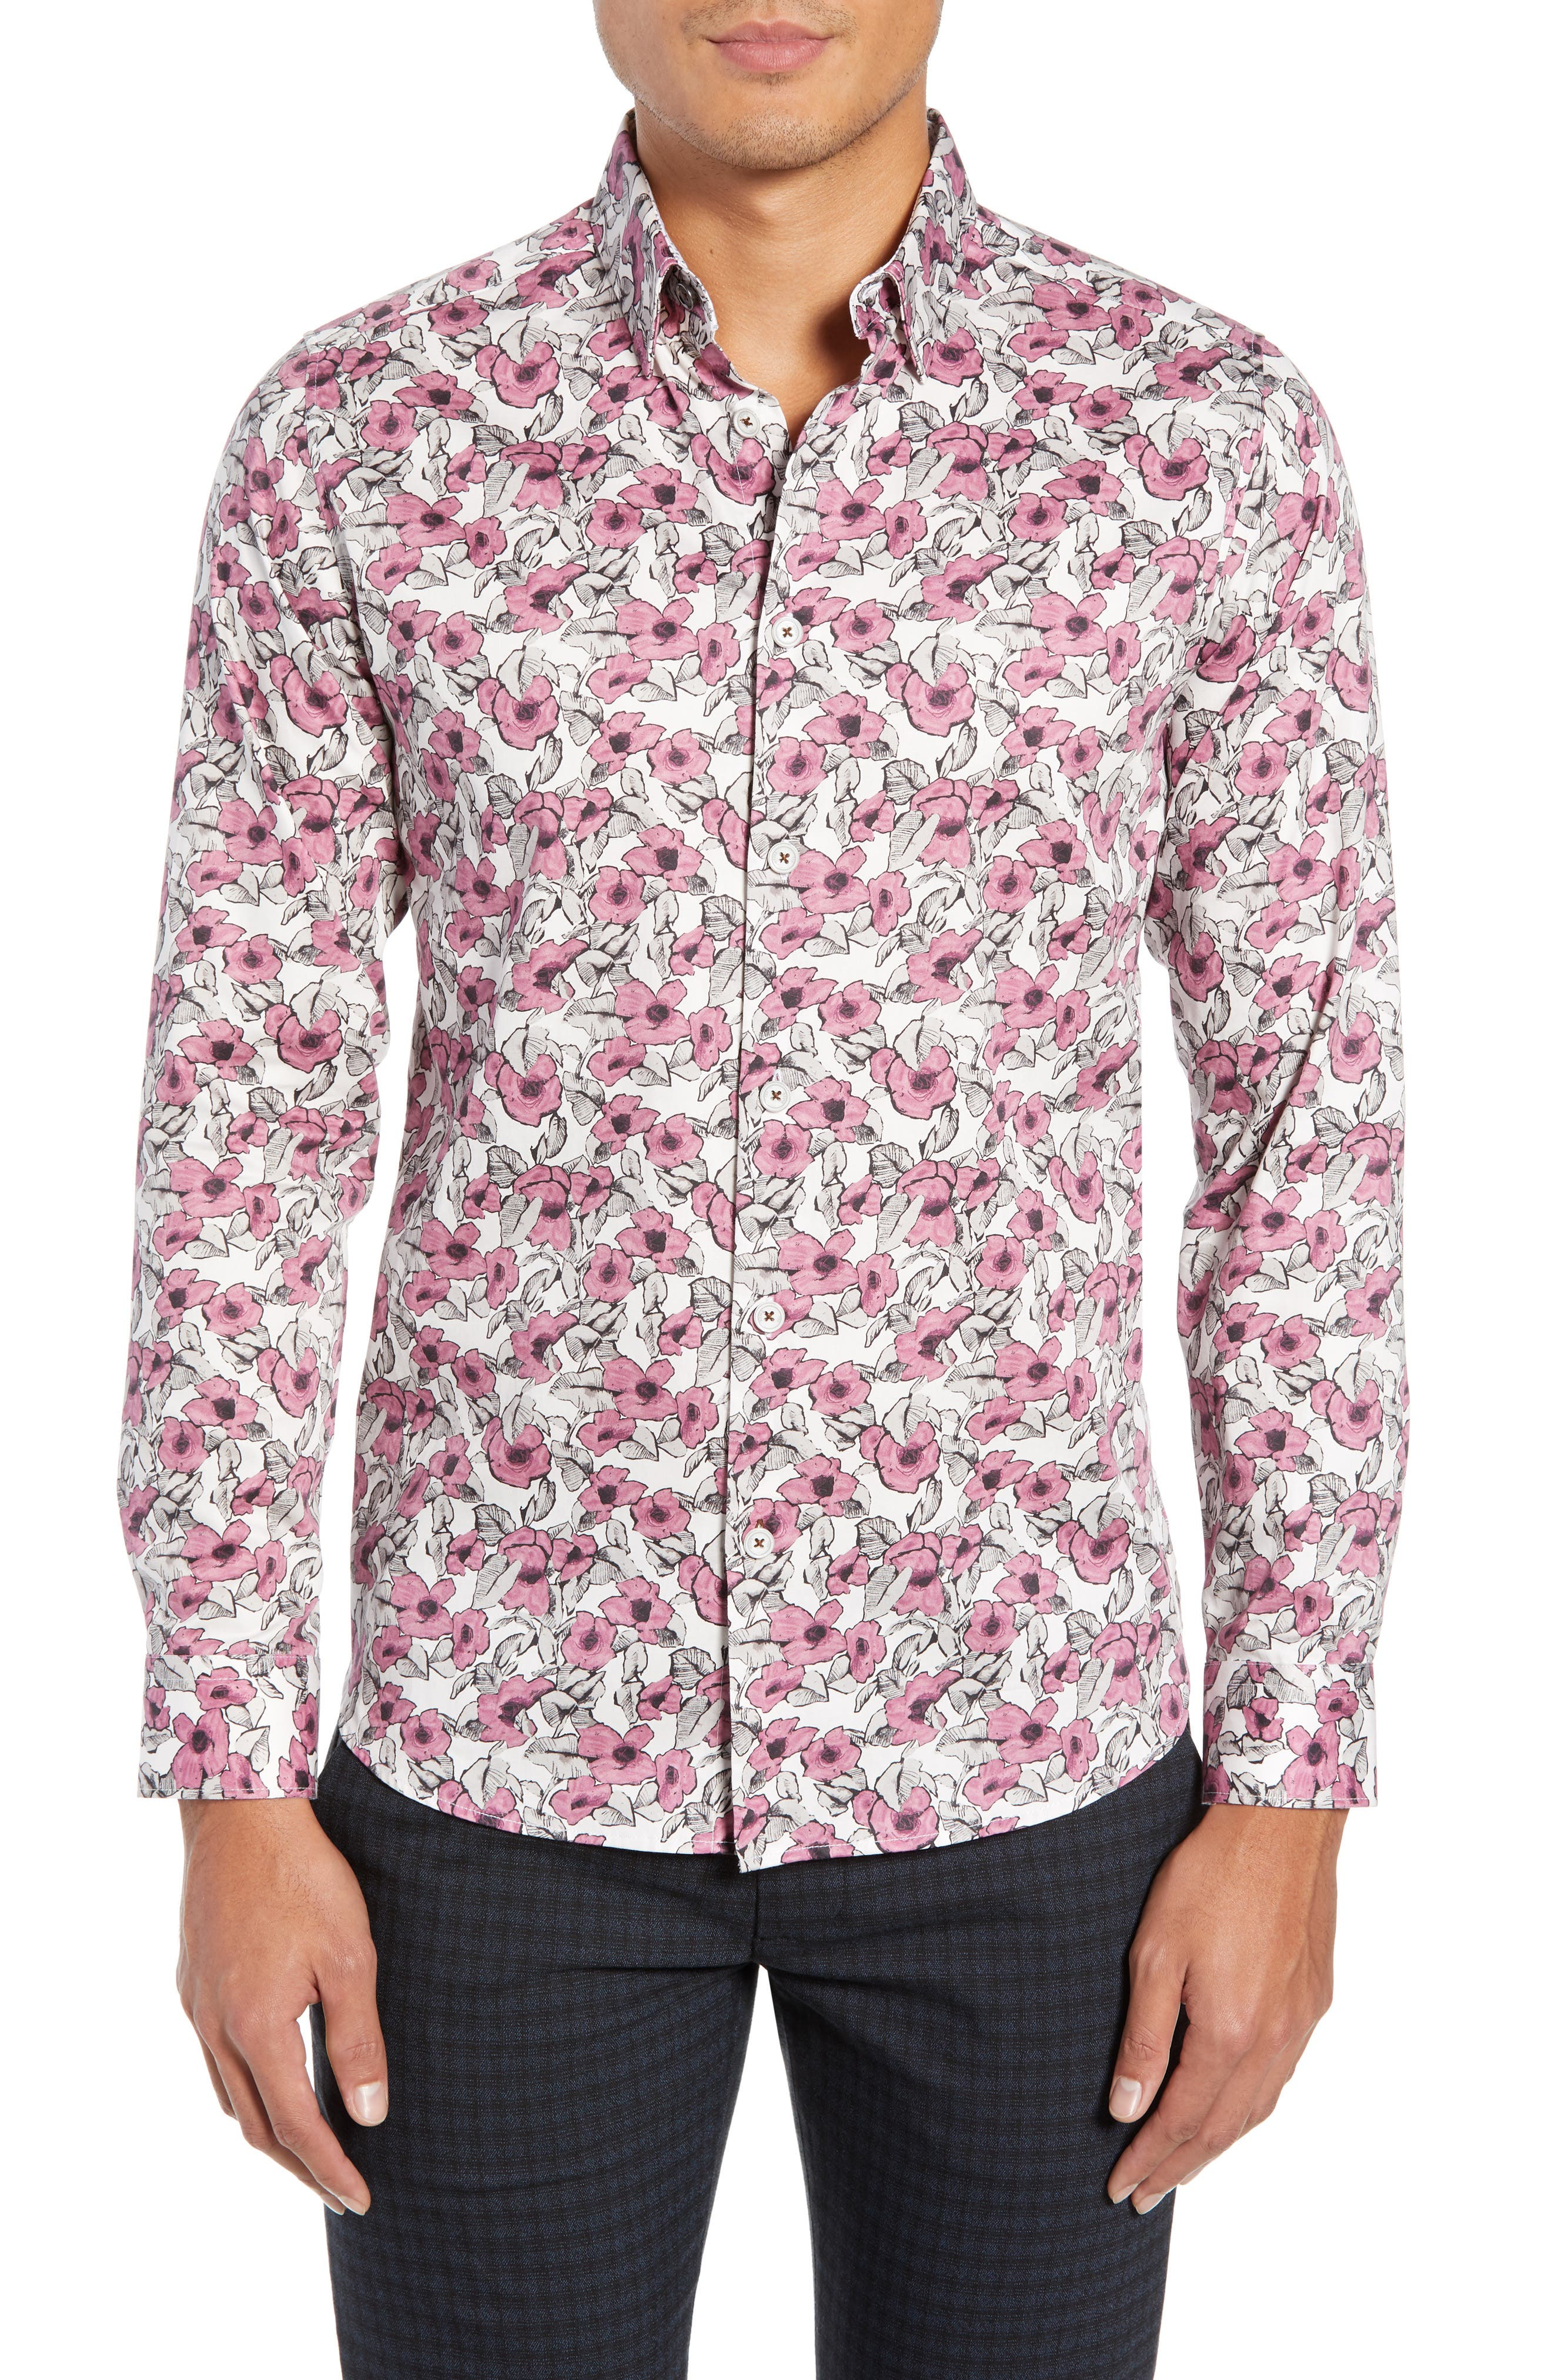 Croyden Slim Fit Floral Sport Shirt,                             Main thumbnail 1, color,                             PINK